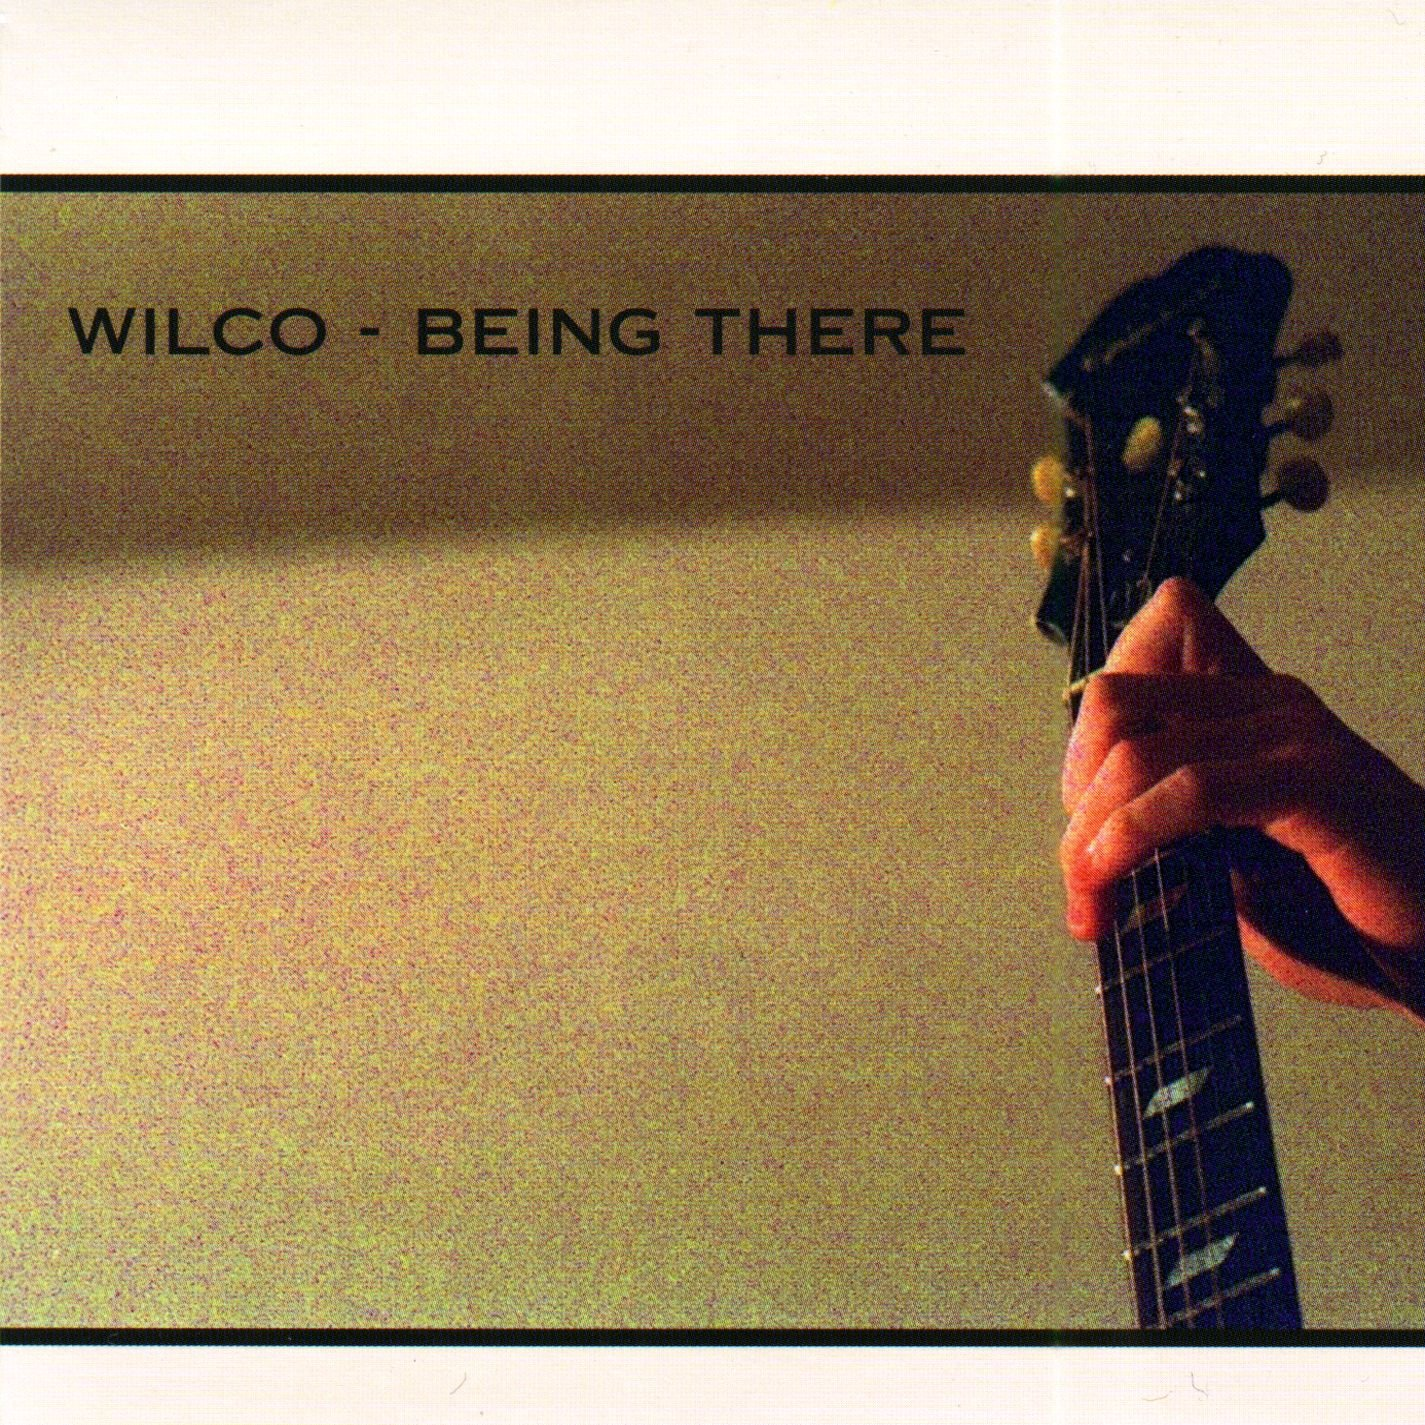 Wilco - Being There [4xLP] (Deluxe Edition)